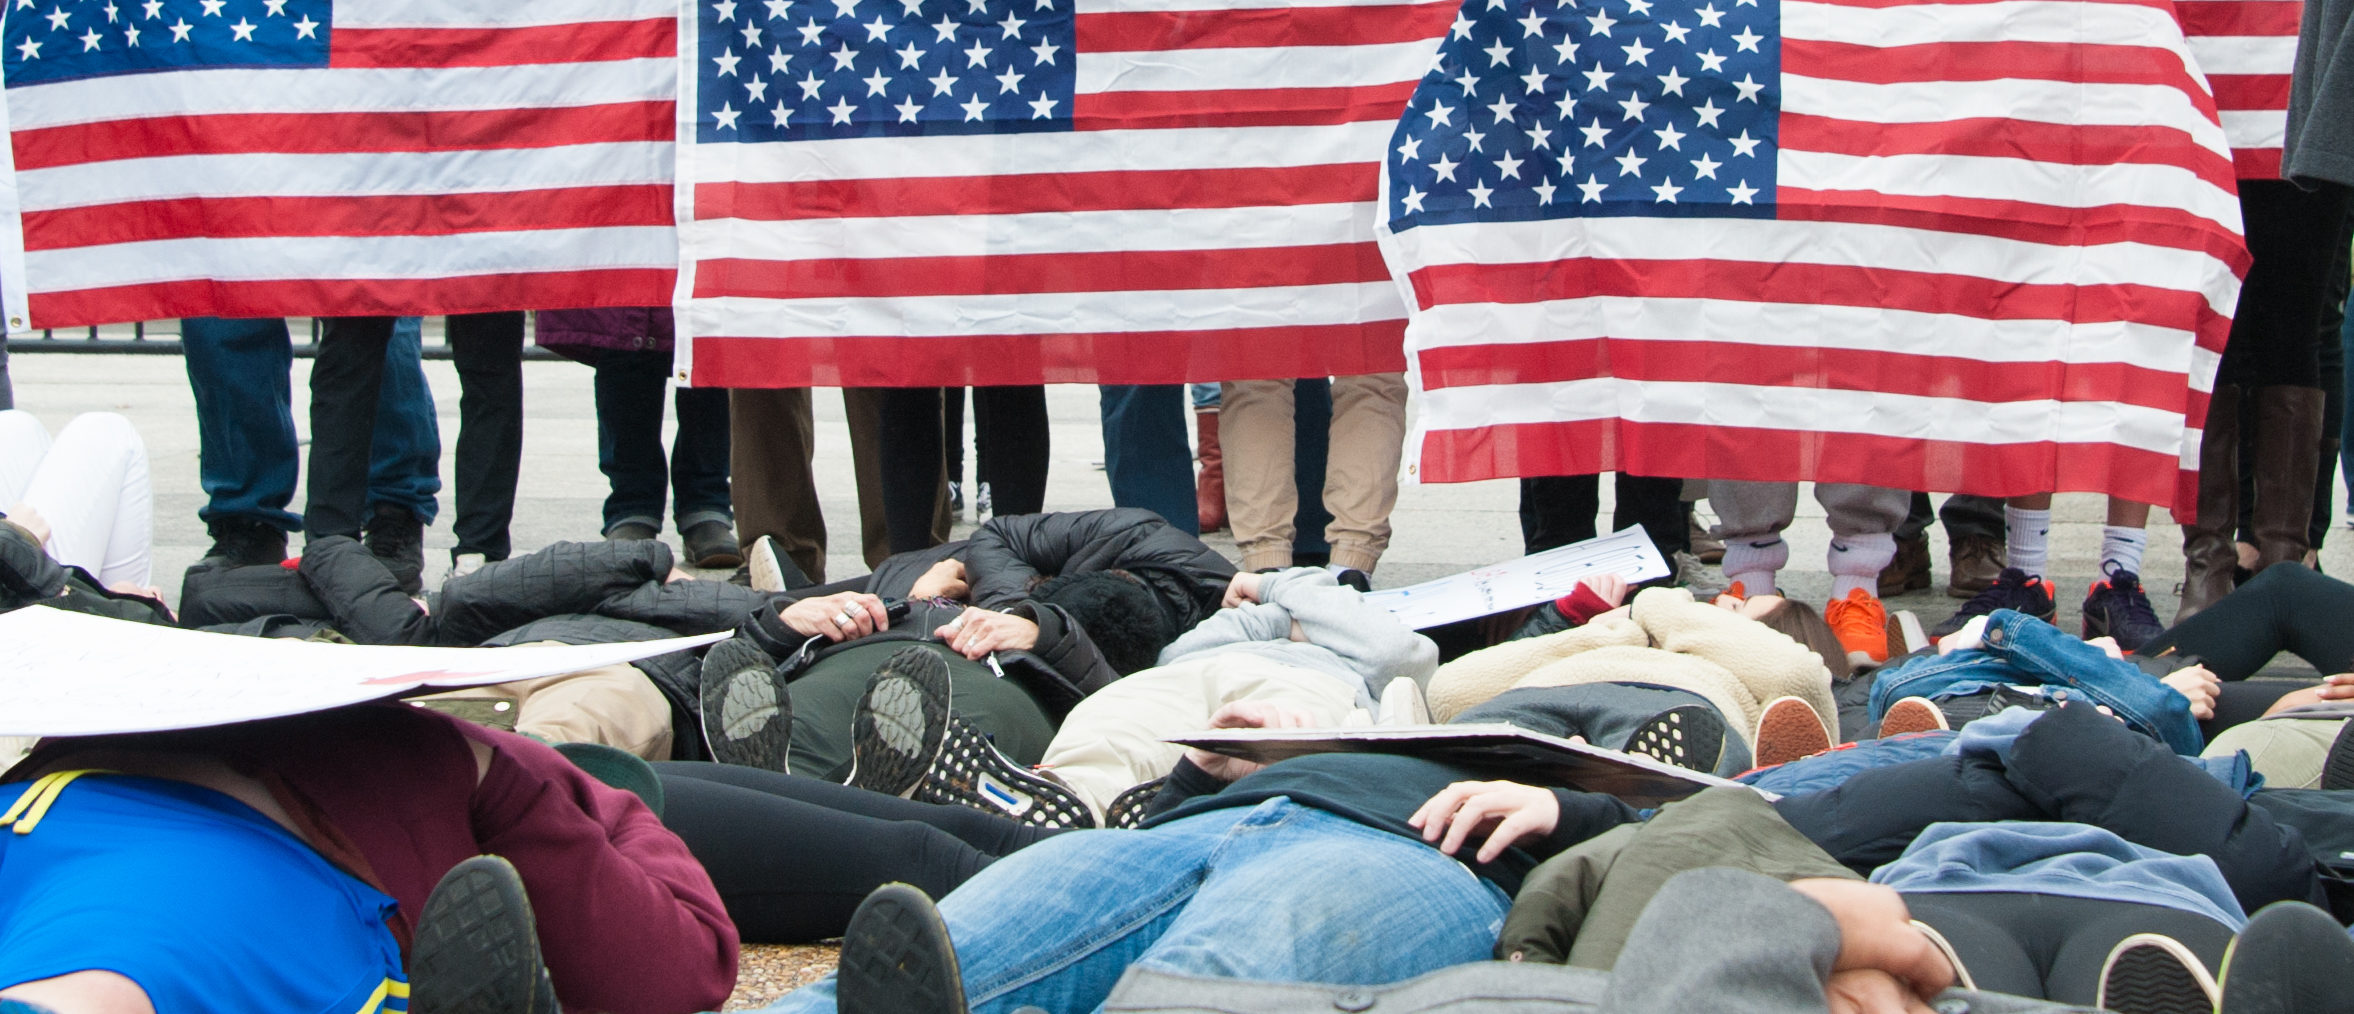 Teenagers stage a lie-in at the White House to protest gun laws (Shutterstock/Rena Schild)